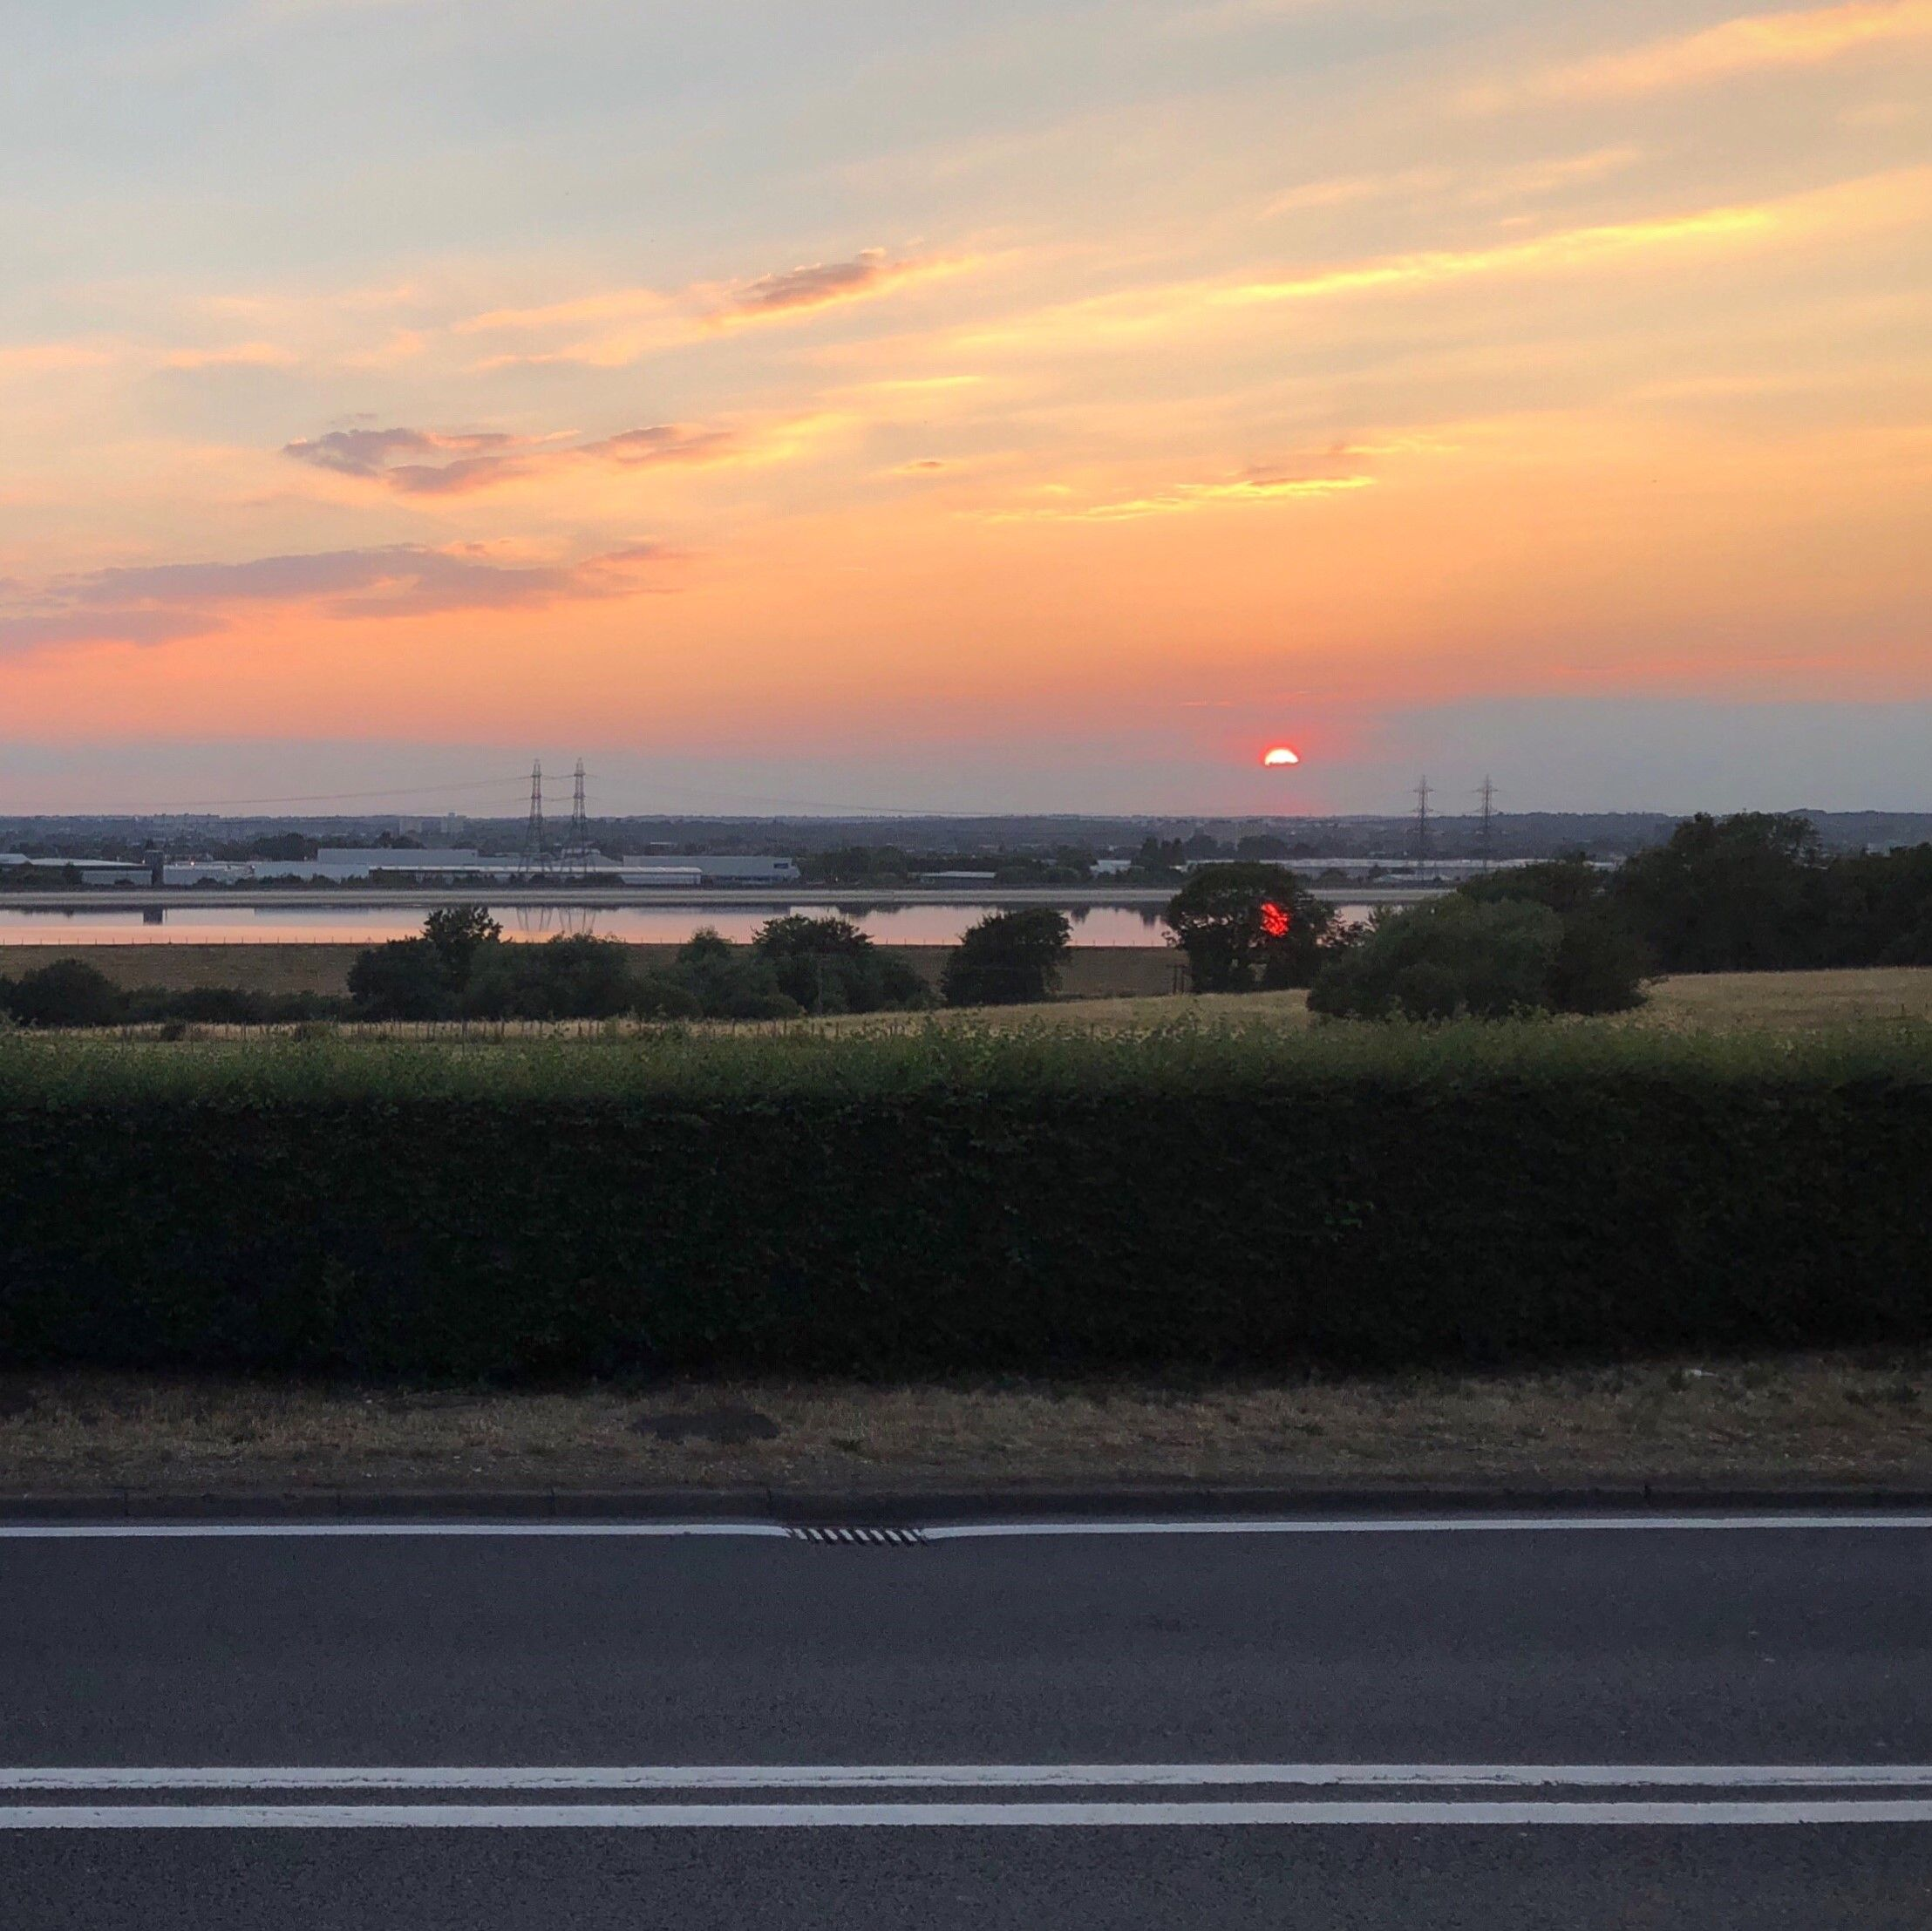 Sunset over the reservoirs